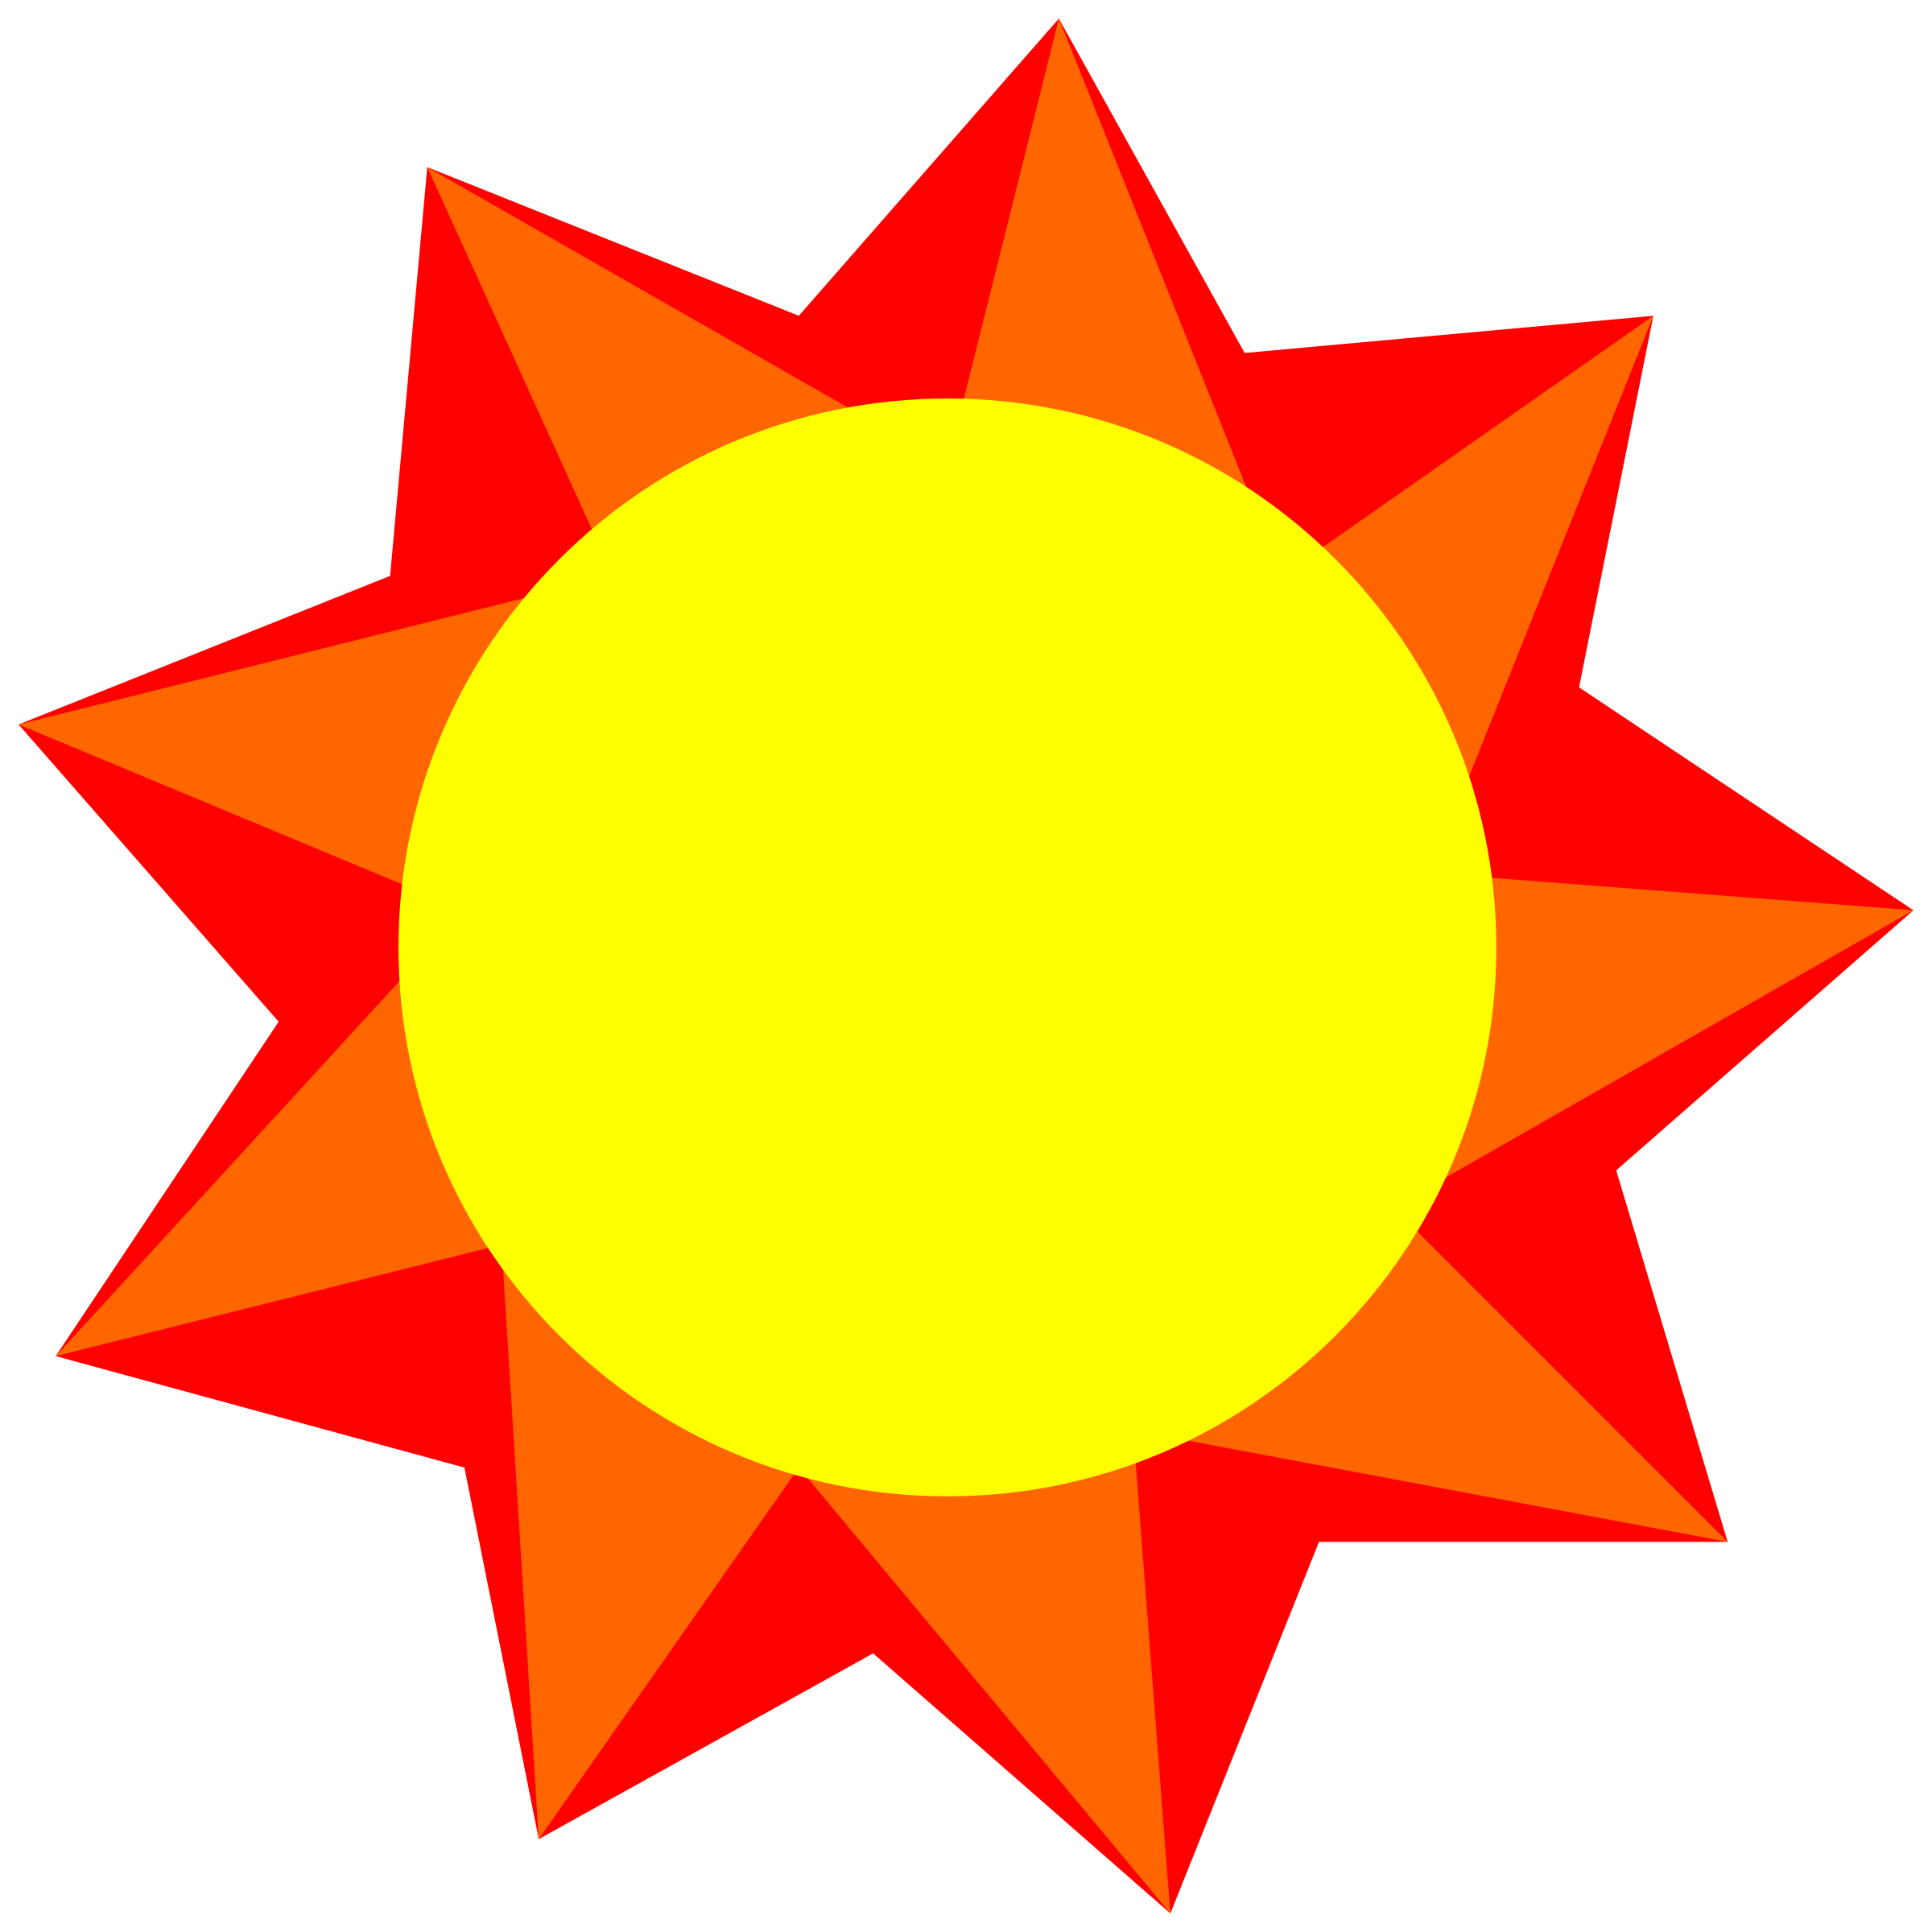 Spring sun clipart image library library Clipart - Sun, Spring, 2015 image library library